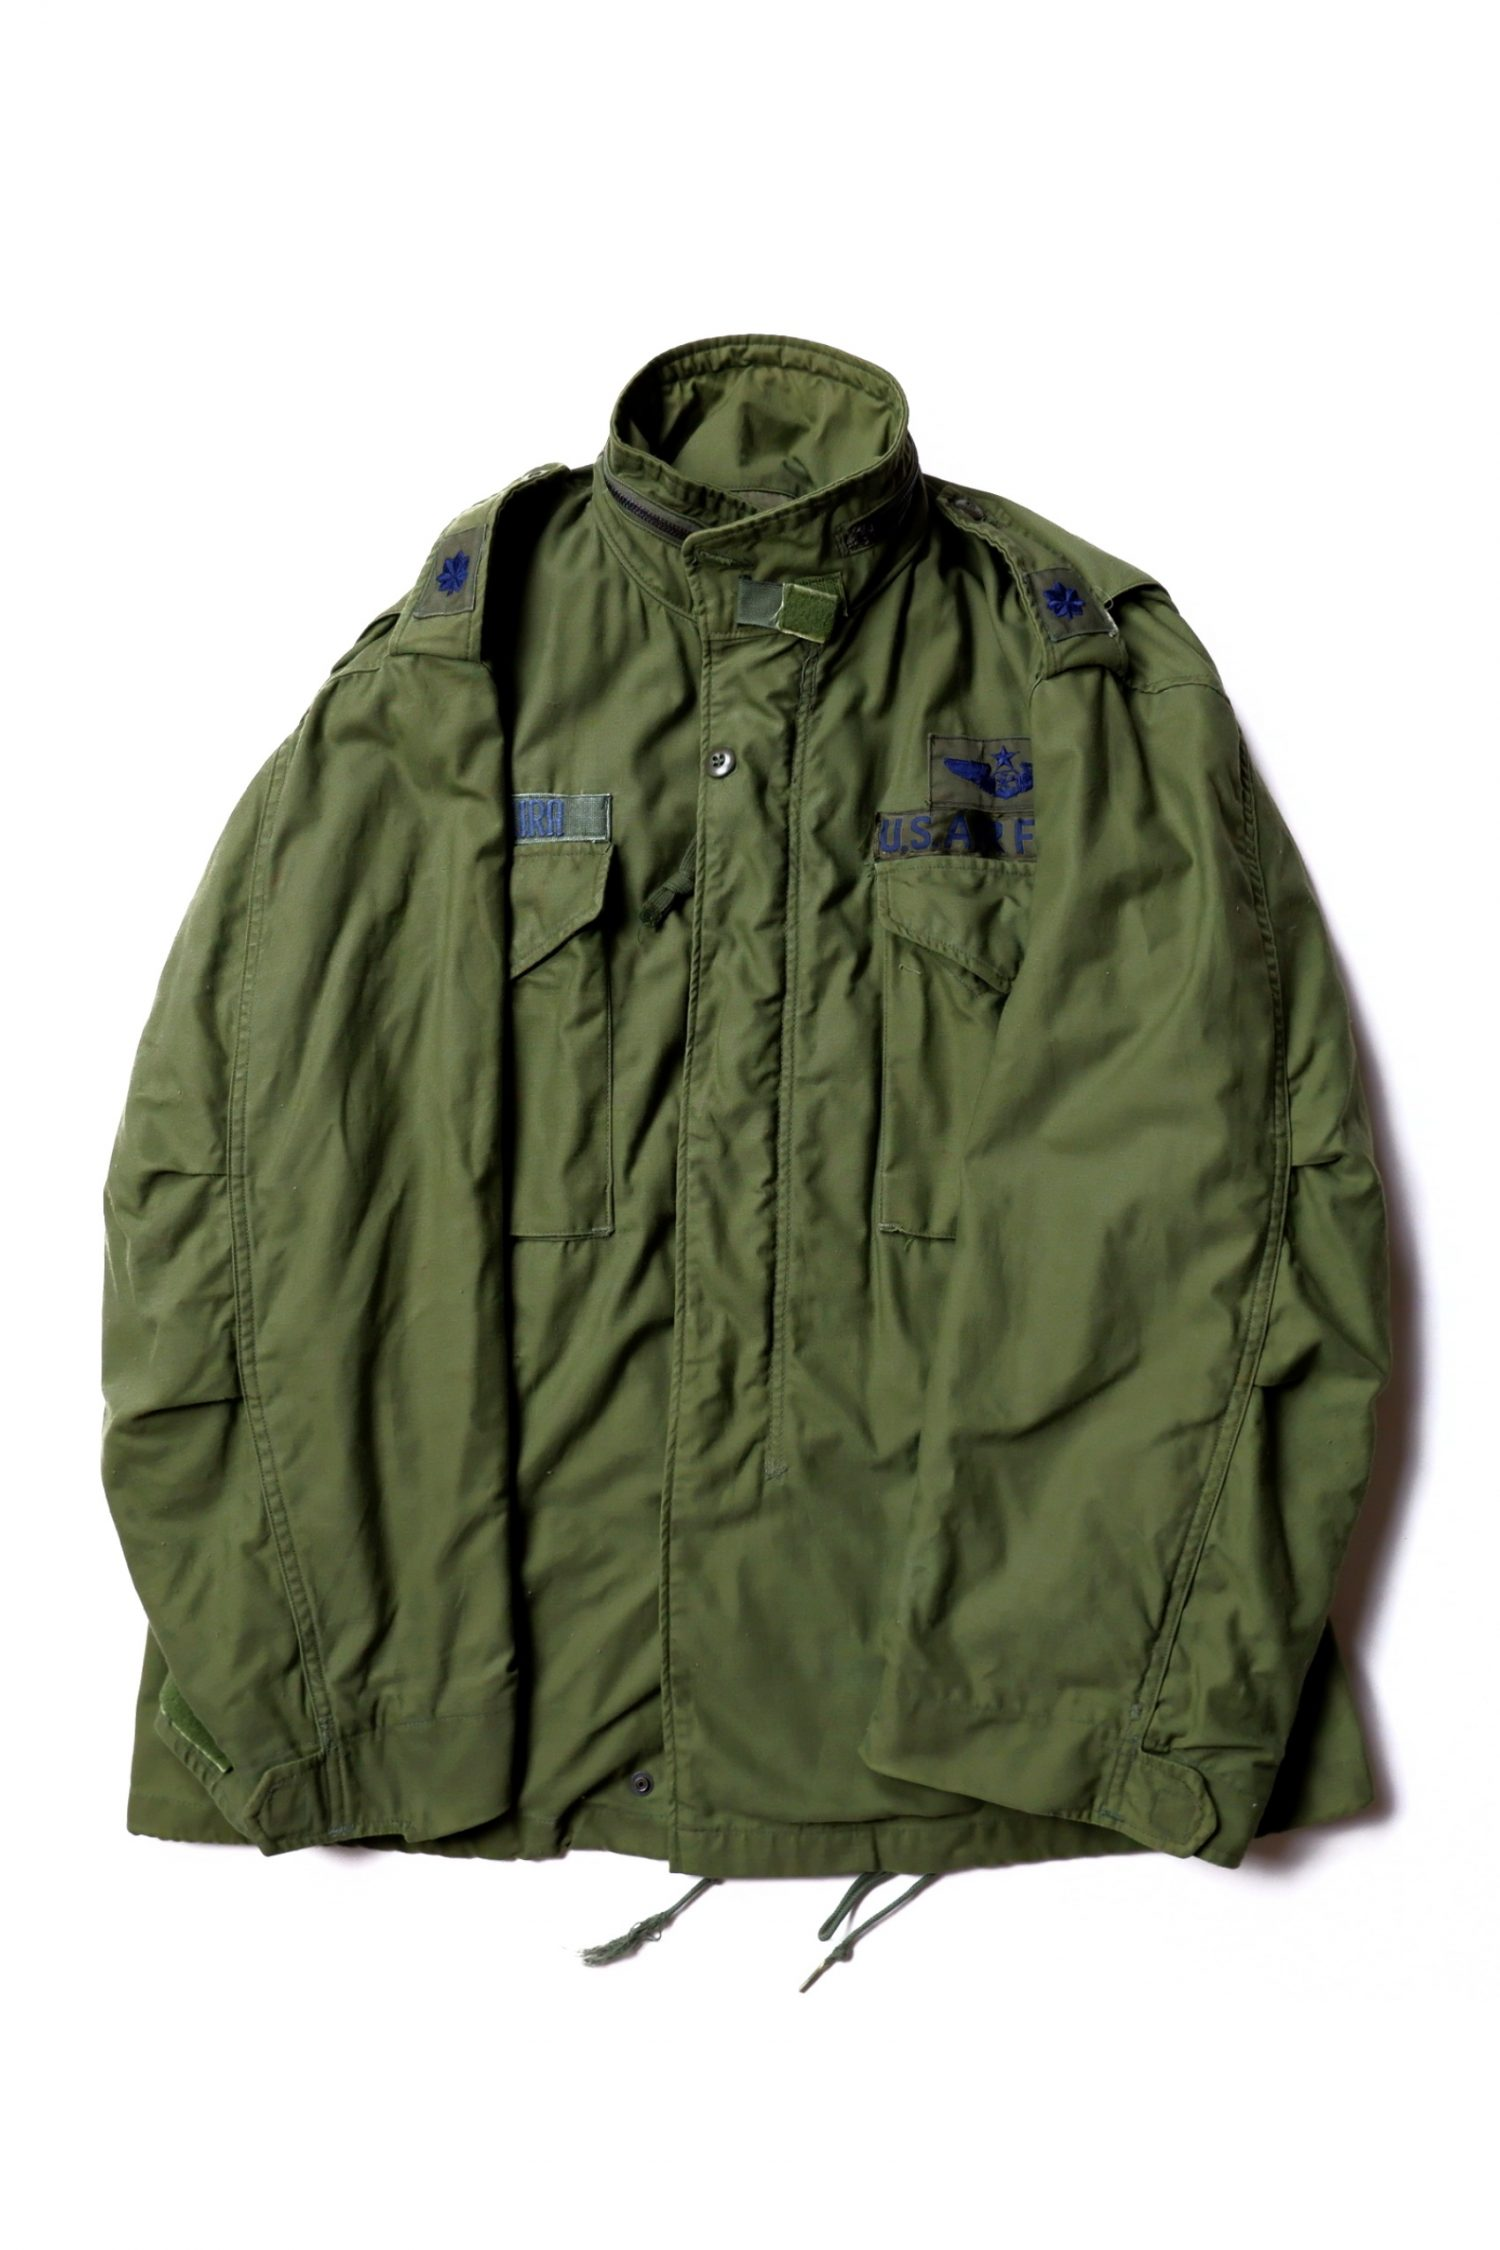 M-65 3rd Jacket